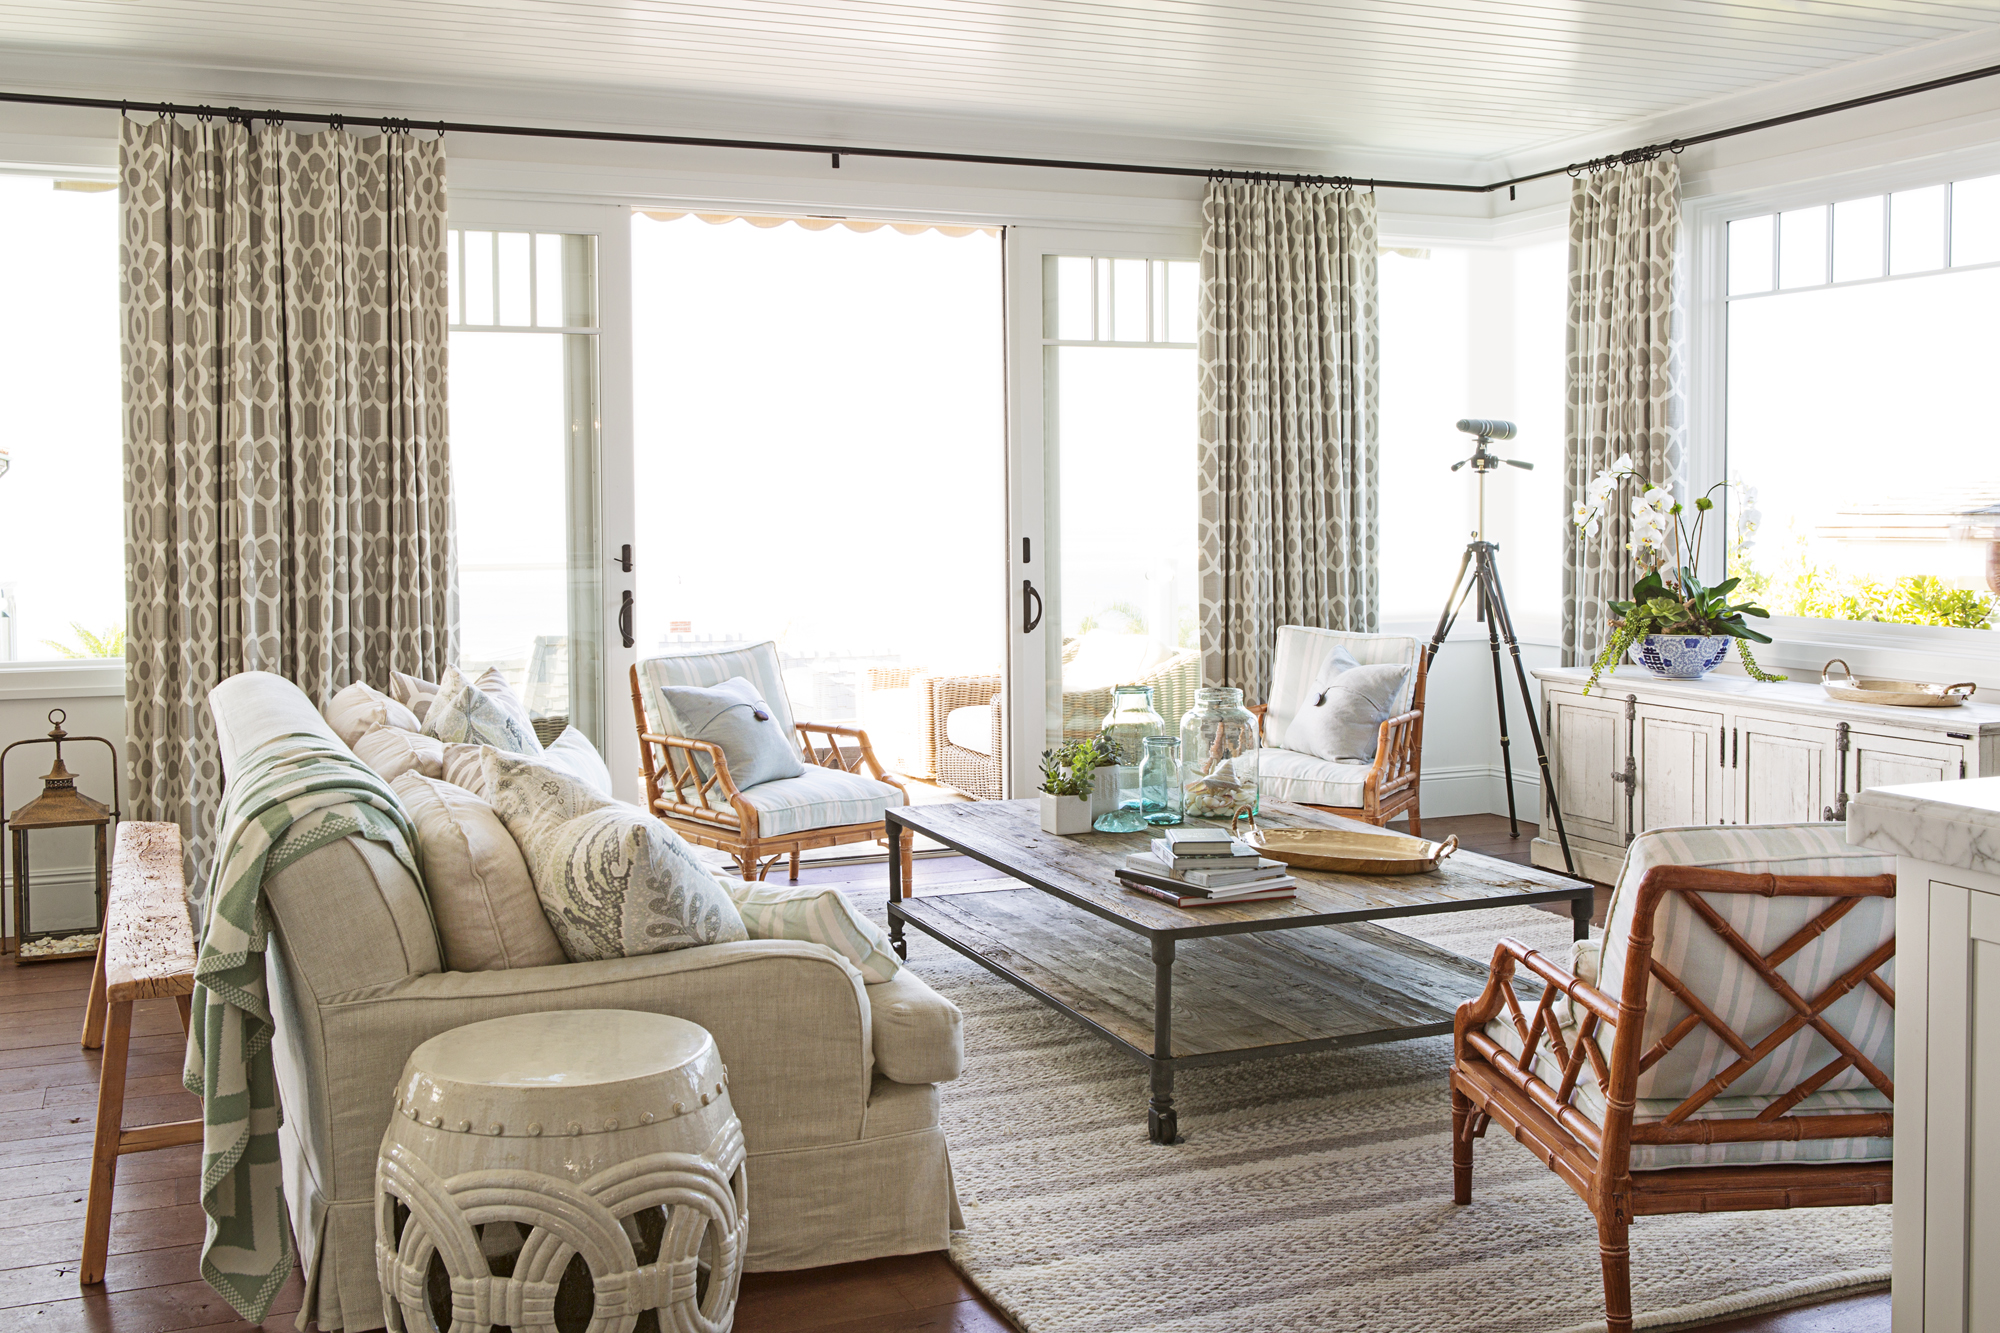 beach living room design.  Beach House Style Coastal Decorating Tips and Tricks